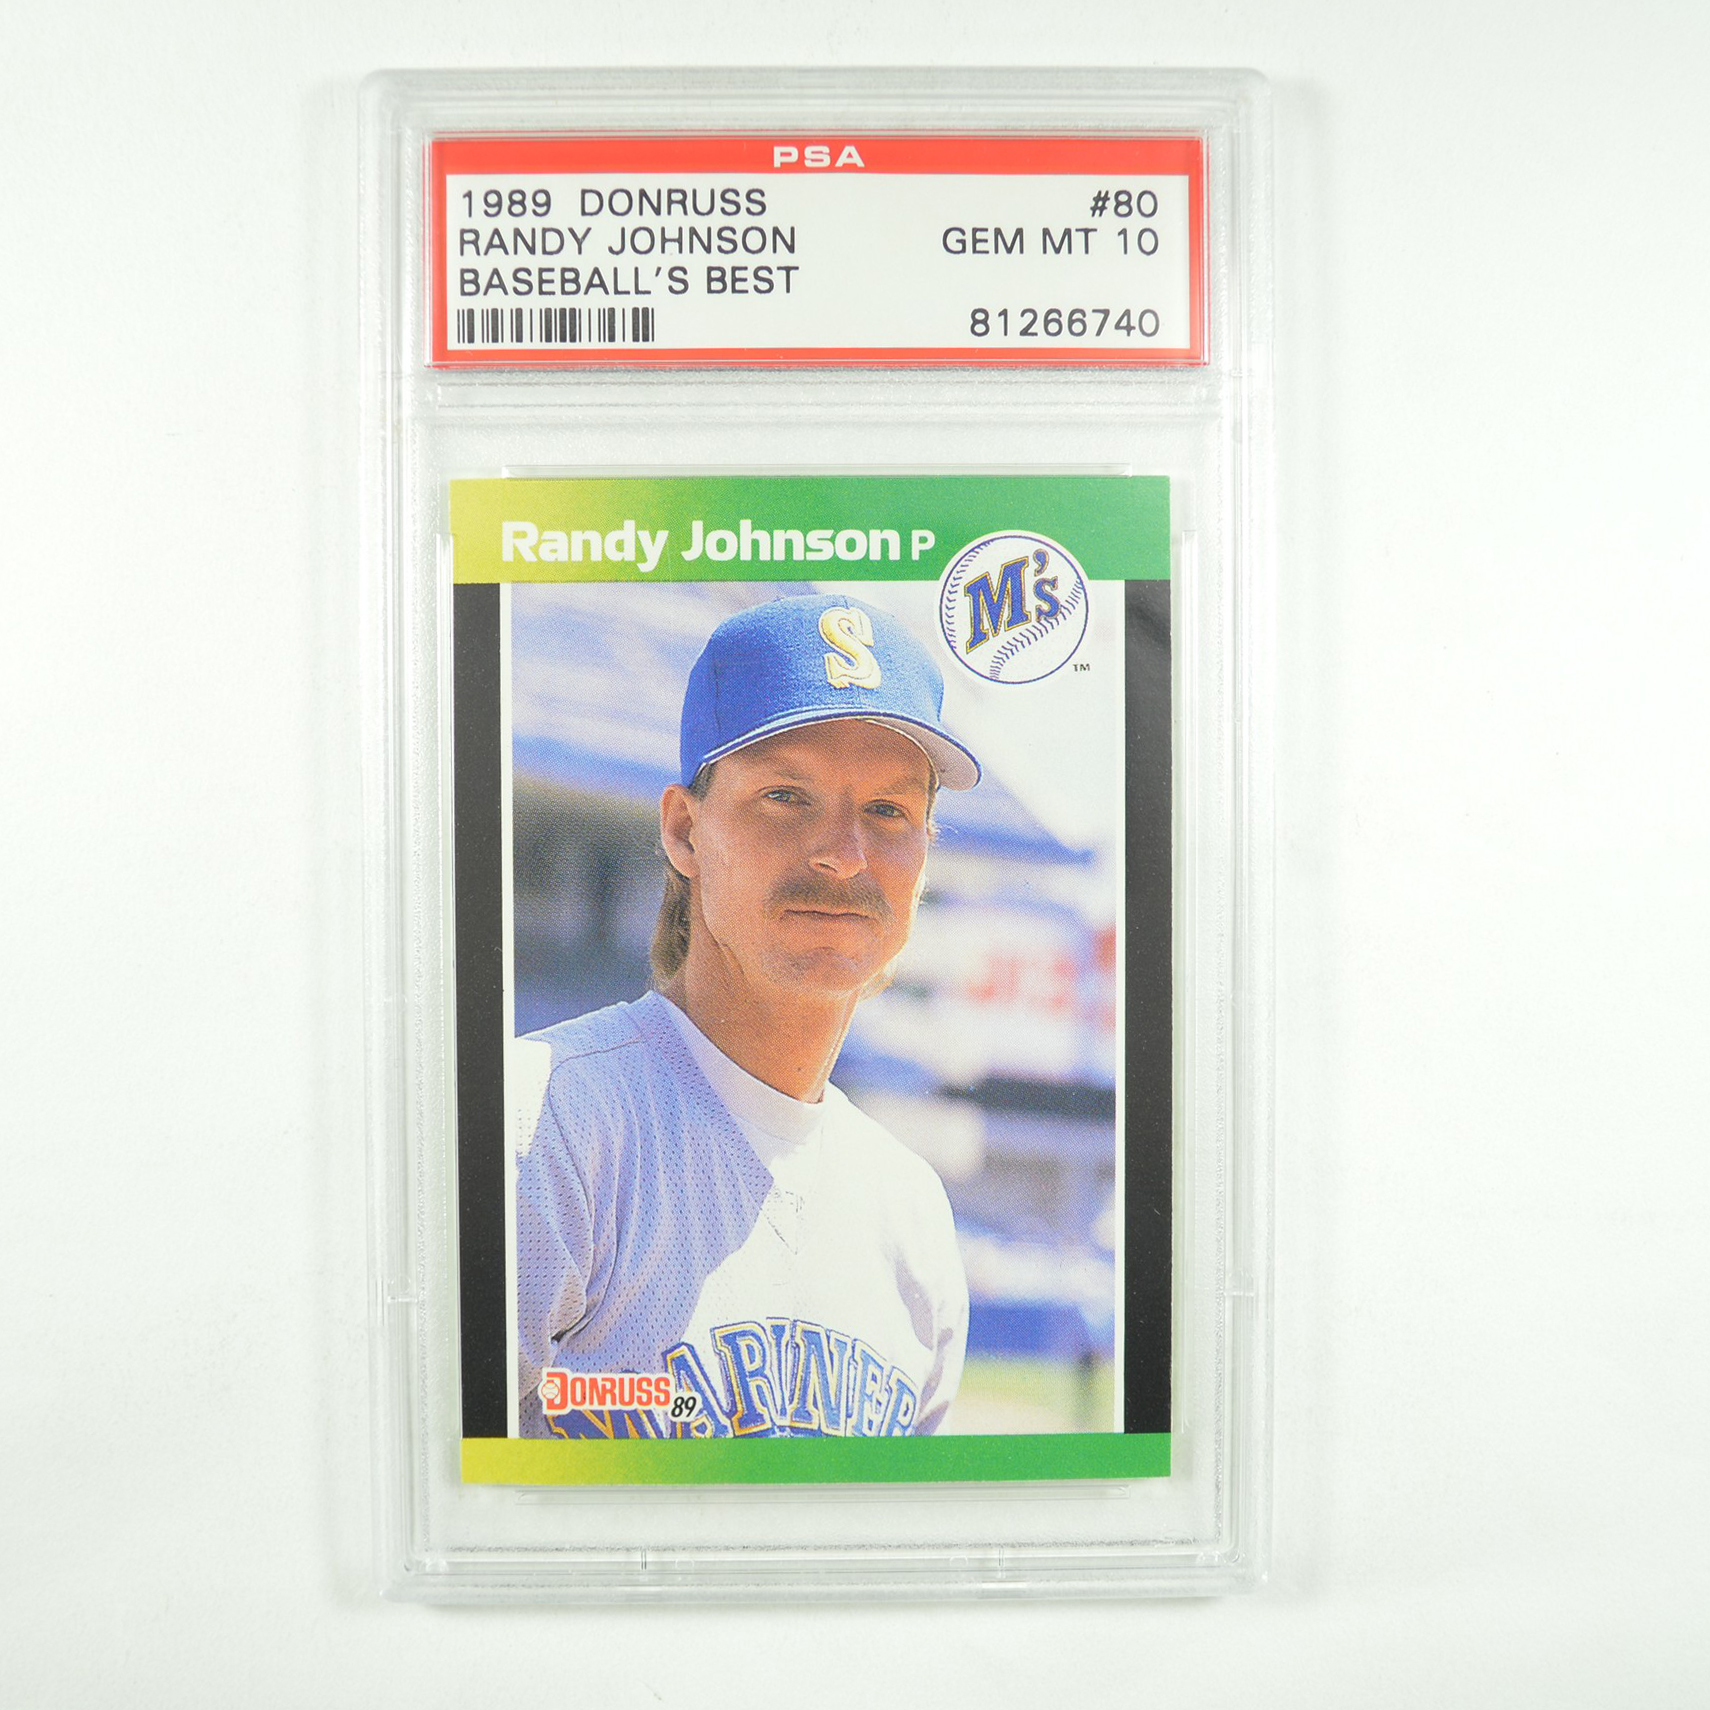 1989 Donruss Baseball's Best Randy Johnson #80 Rookie